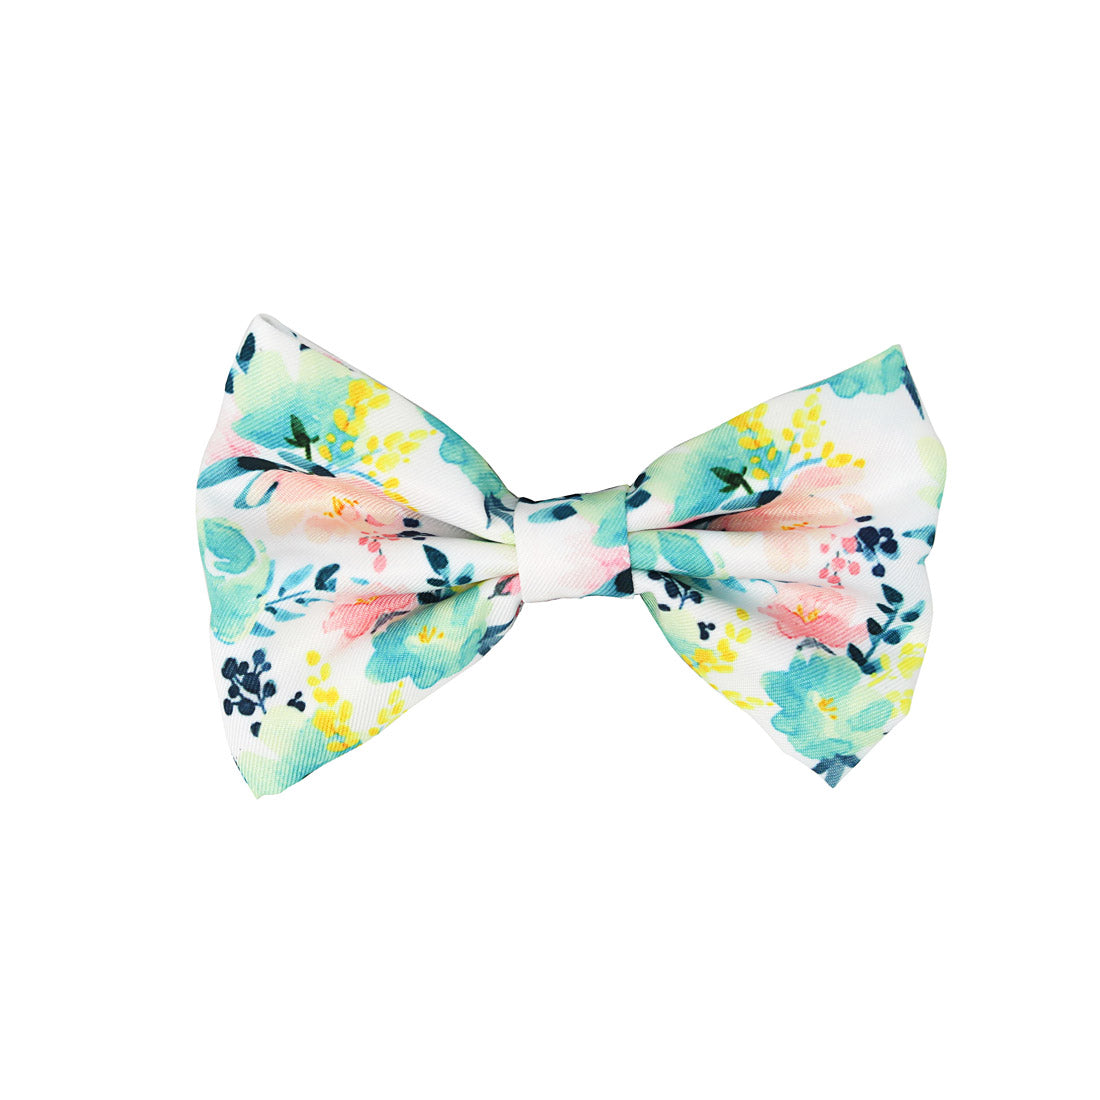 Dog Bow Tie - Sweet & Simple